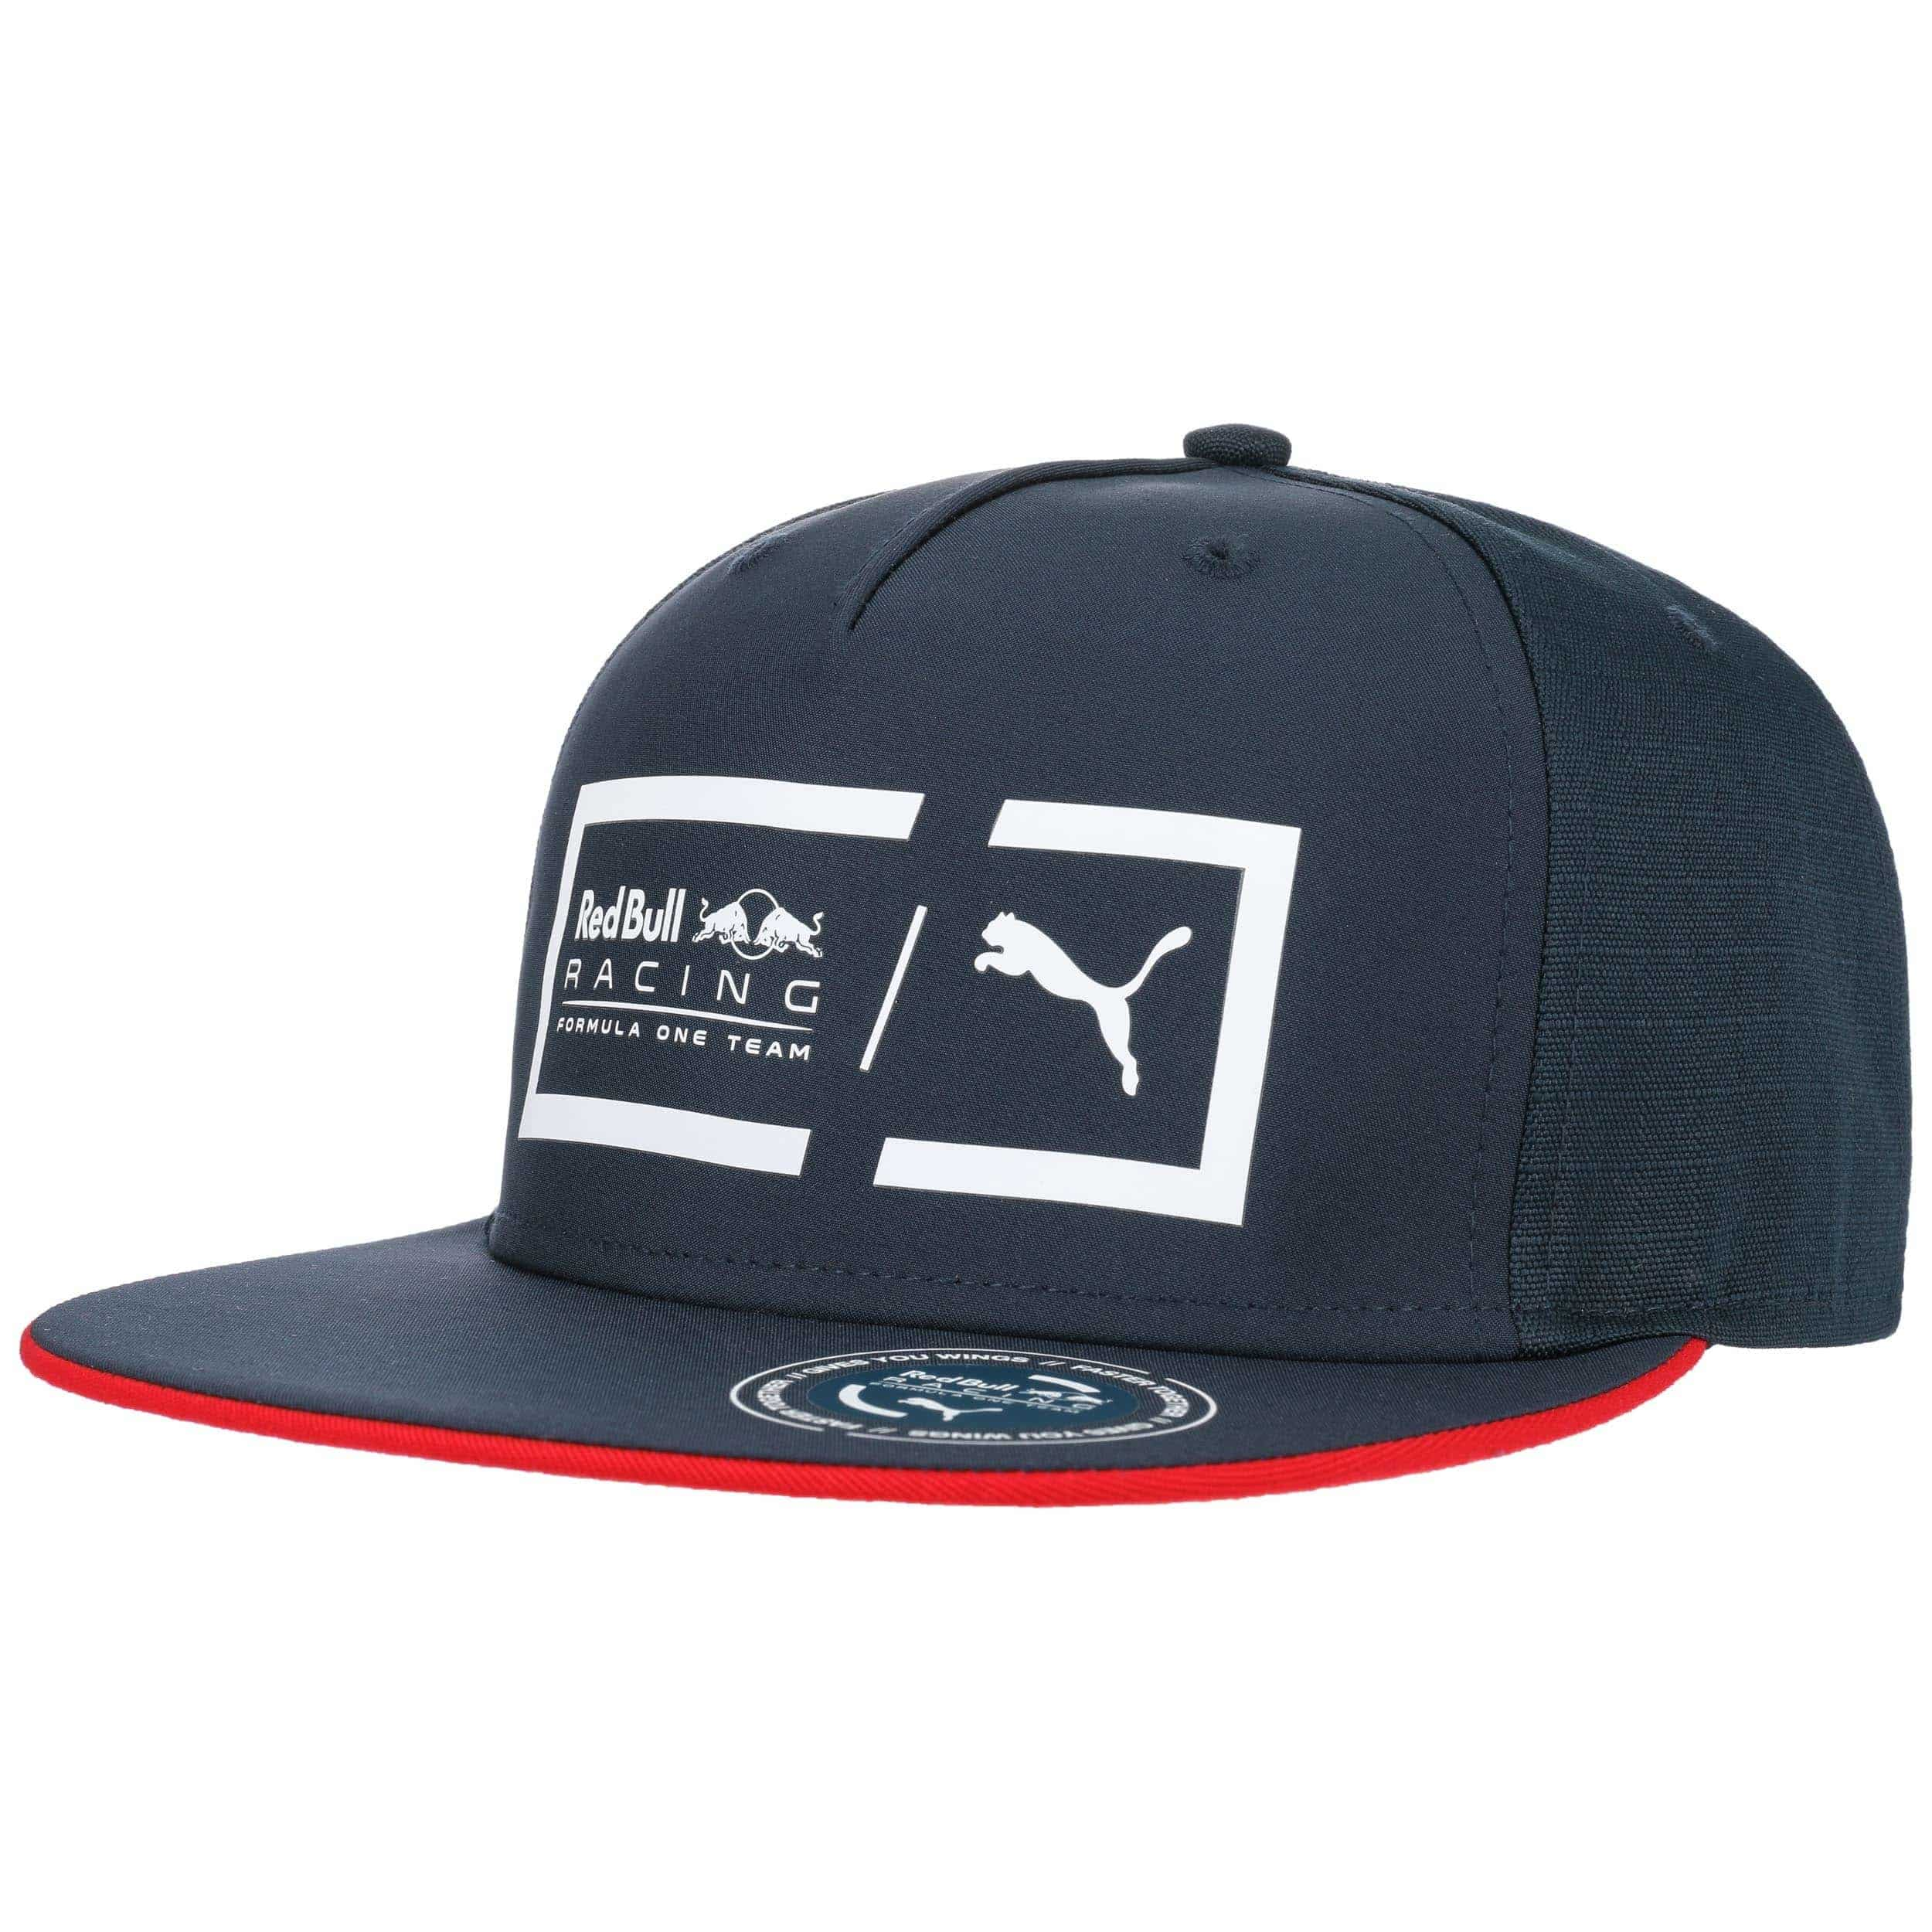 red bull racing flat brim cap by puma eur 29 95 hats. Black Bedroom Furniture Sets. Home Design Ideas